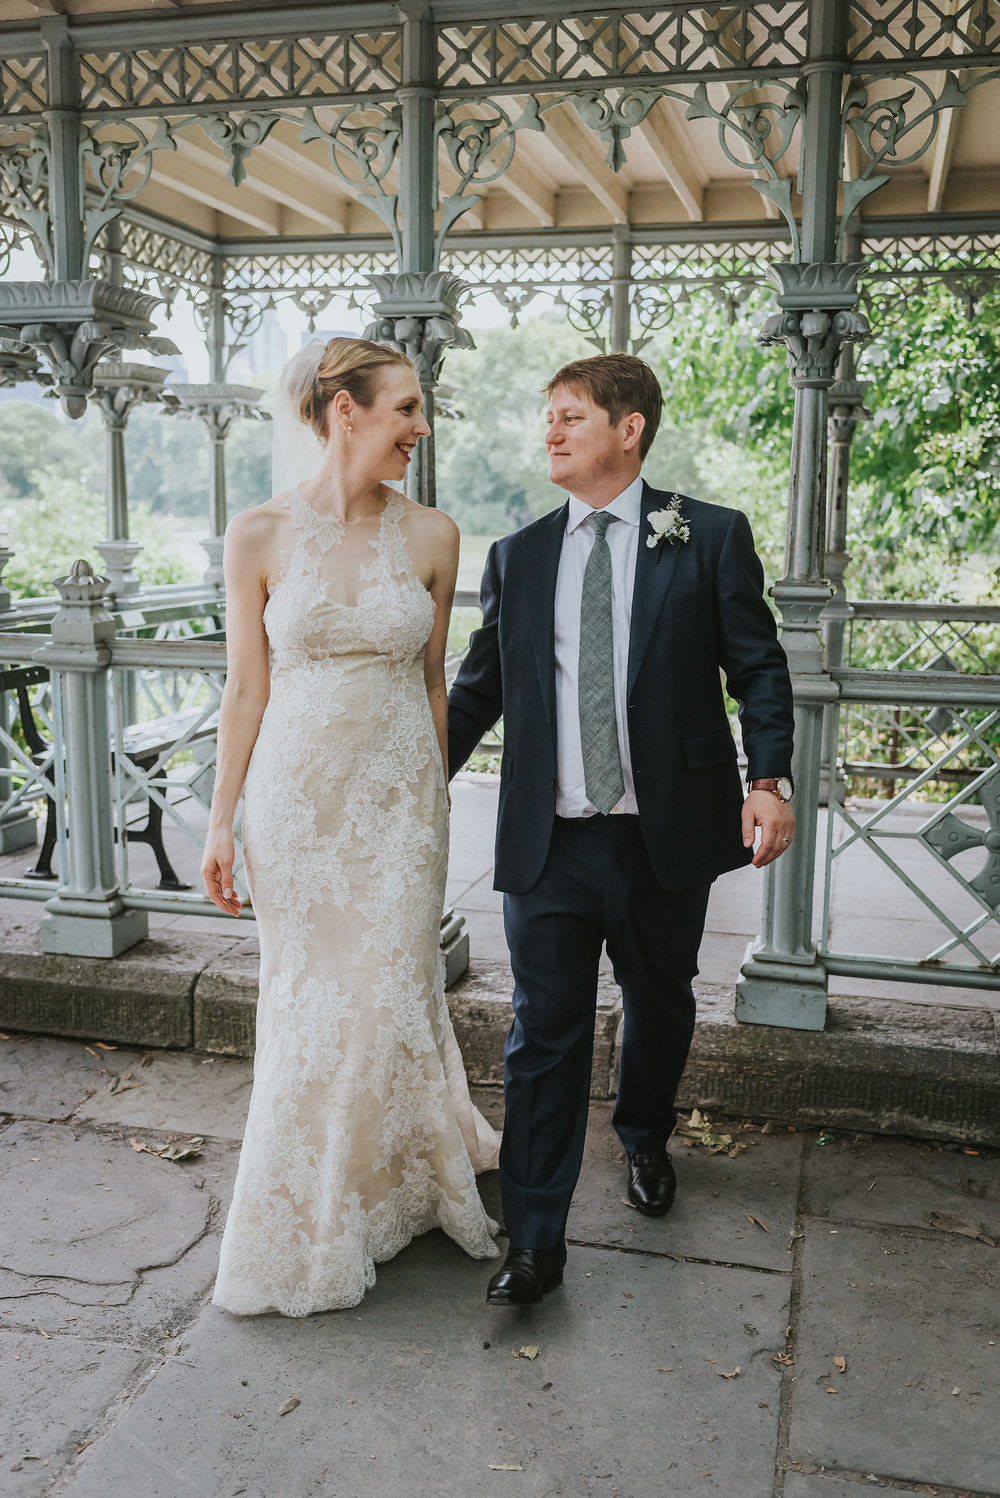 Rebecca & Matt Ladies Pavilion Central Park Elopement NYC Wandermore Photography (28).jpg